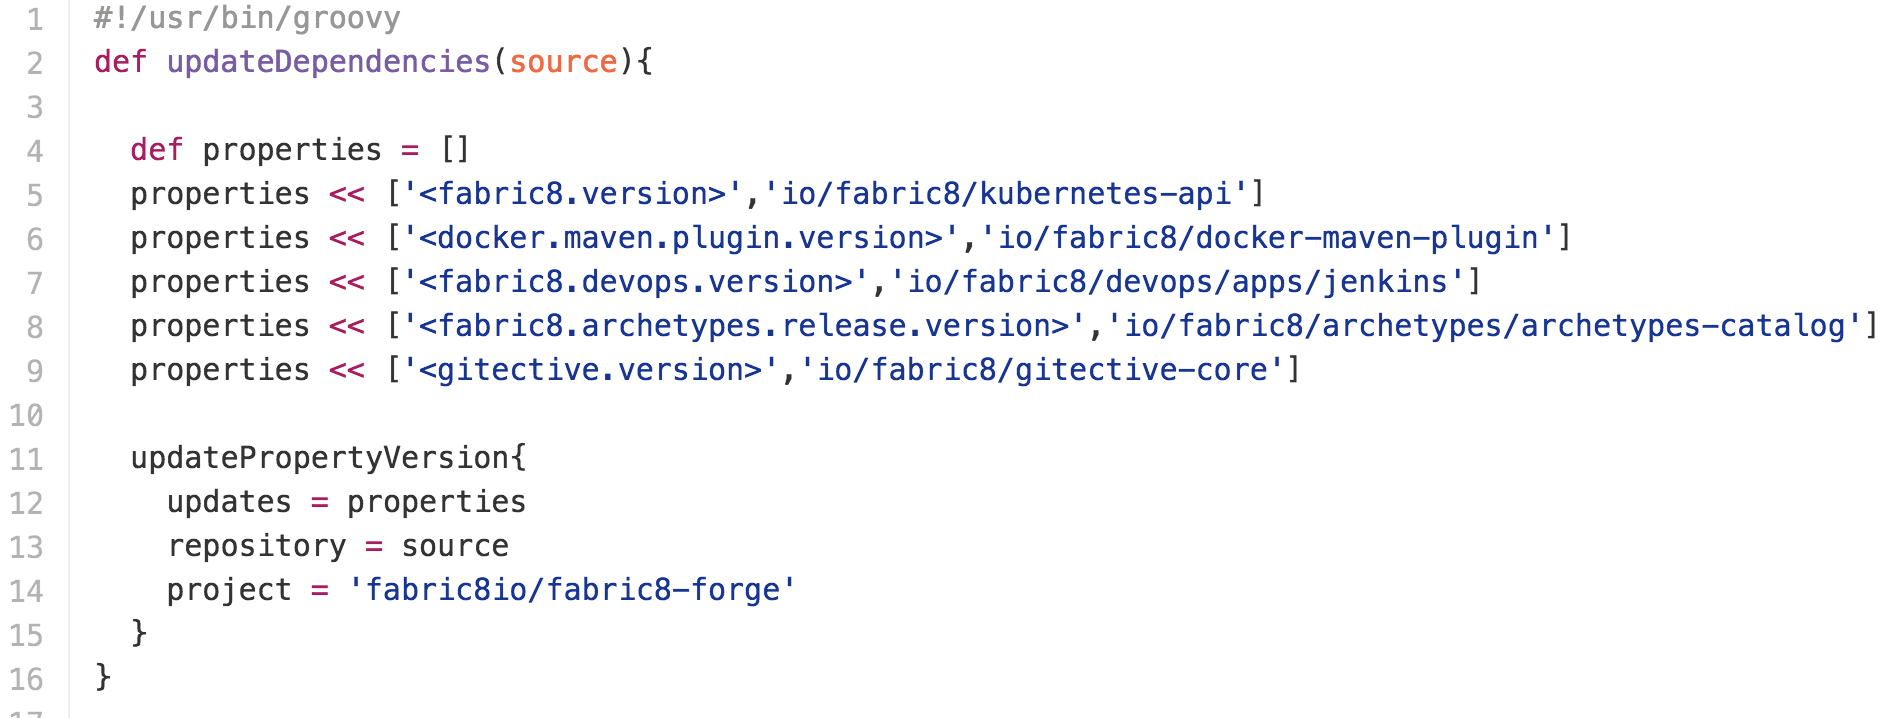 dog fooding fabric8 with Continuous Delivery - fabric8 io